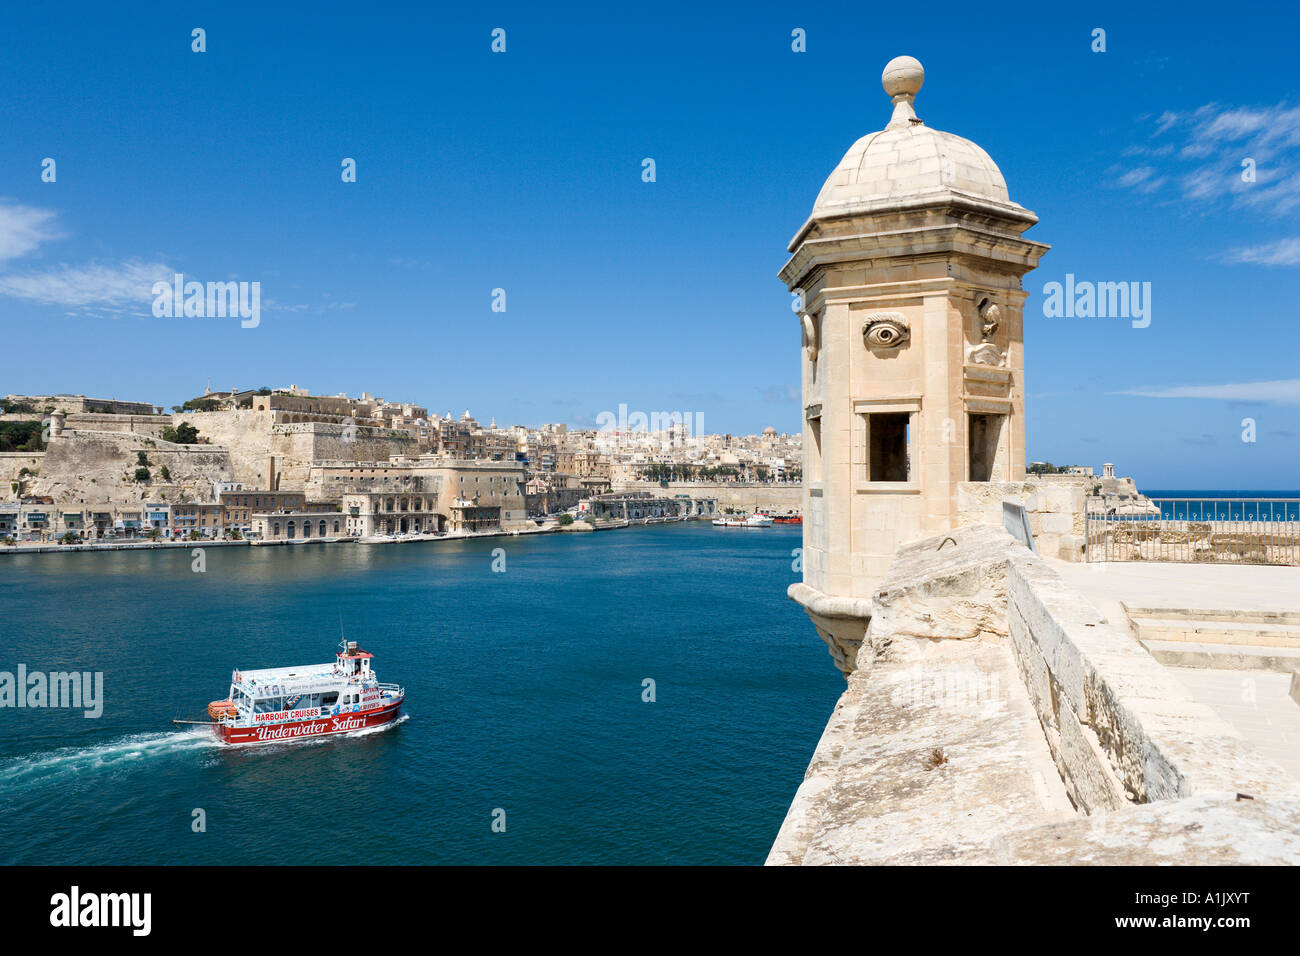 Captain Morgan Harbour Cruise Boat and View of Valletta and Grand Harbour from Senglea, Valletta, Malta - Stock Image